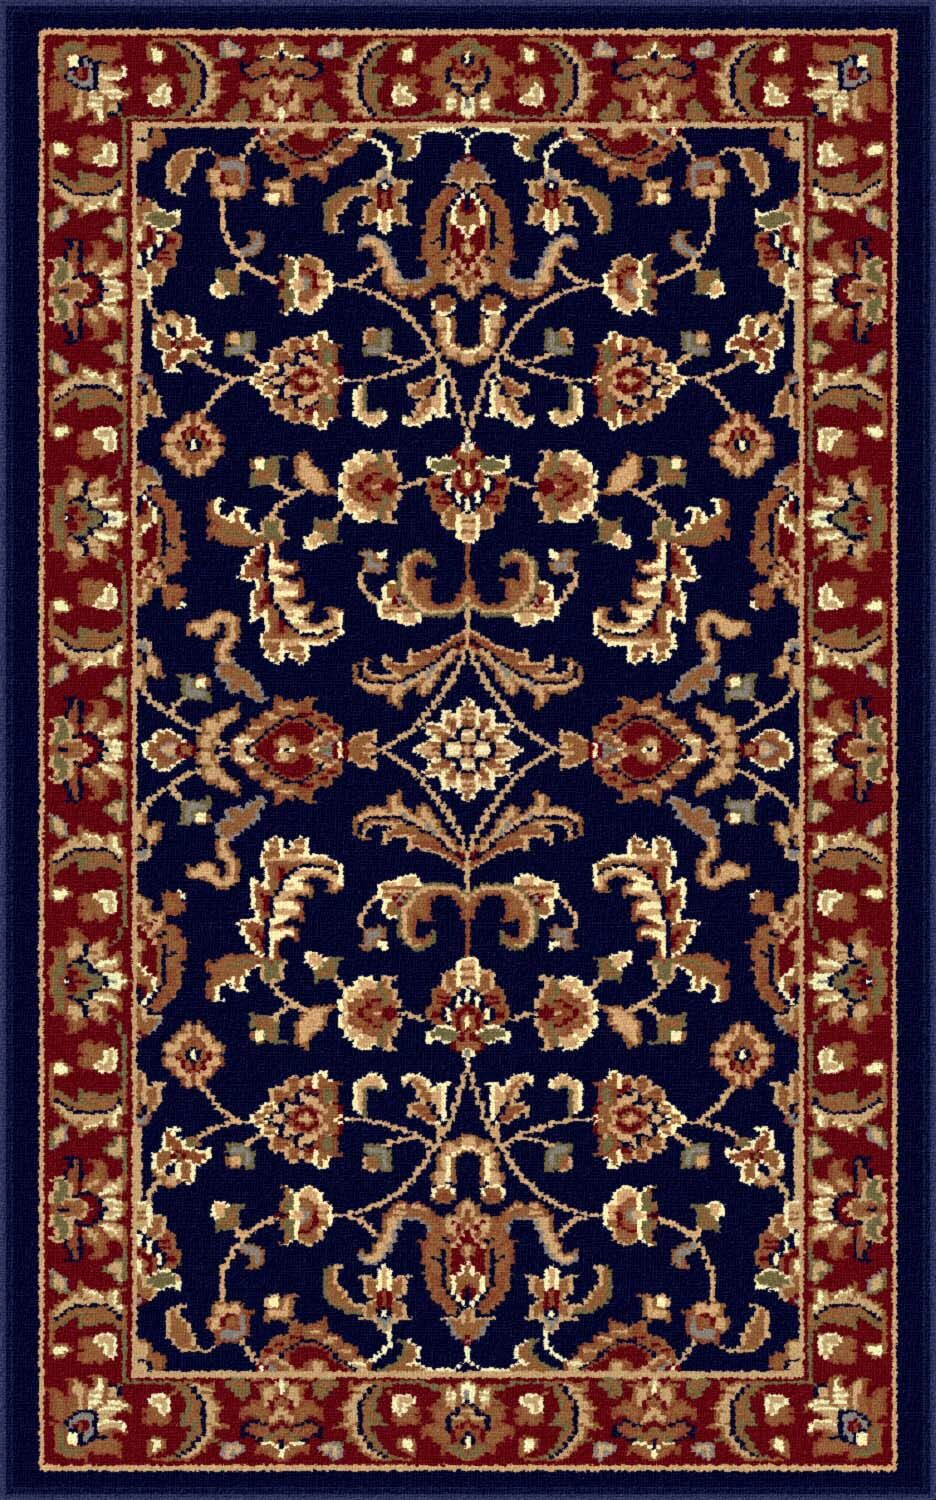 Clarence Navy Blue/Red Area Rug Rug Size: 7'10'' x 10'3''